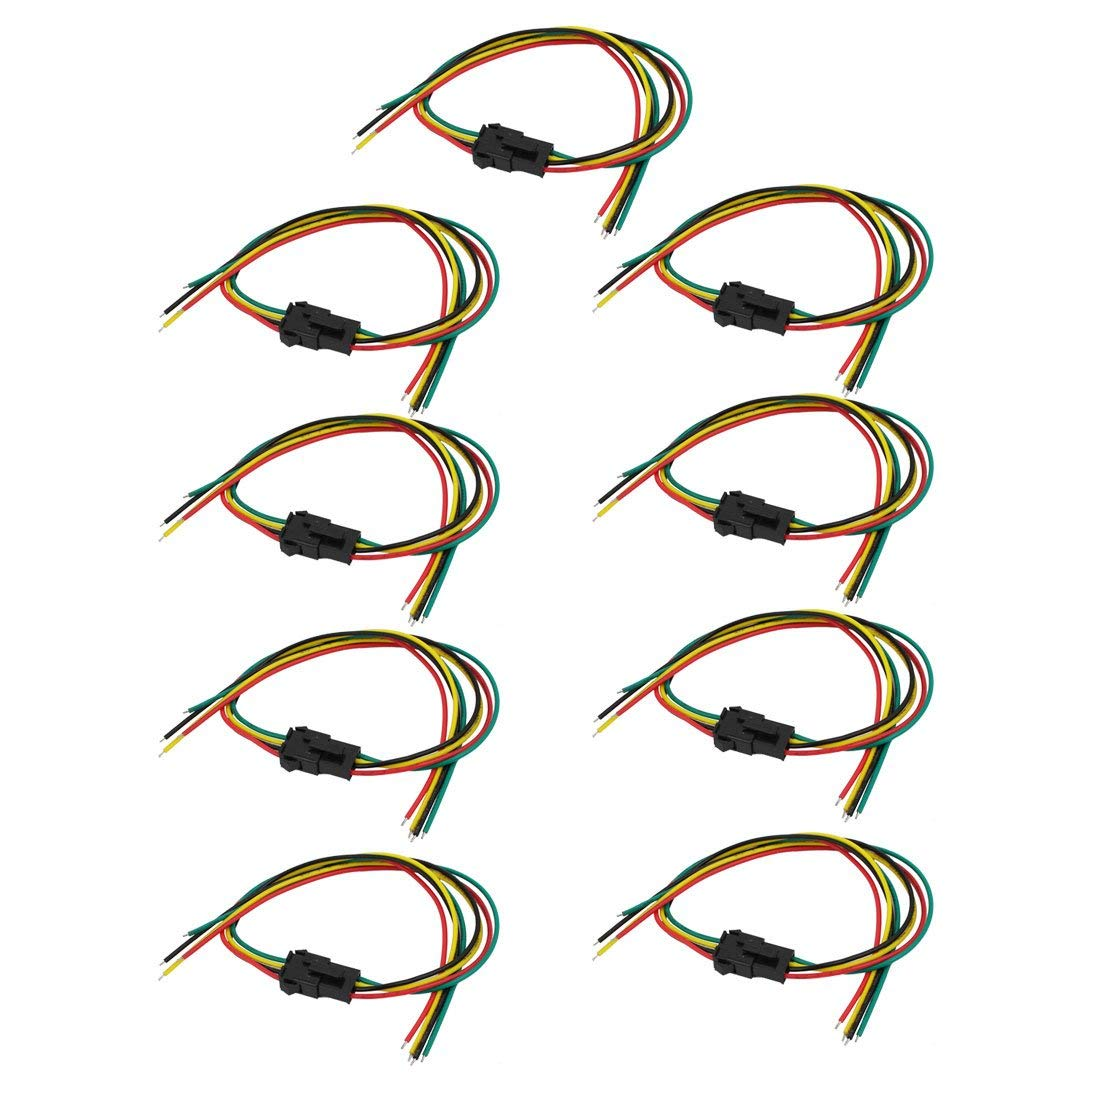 uxcell 9 Pairs SM 4-Terminal Male Female Socket Wire Cable Connector 200mm Length